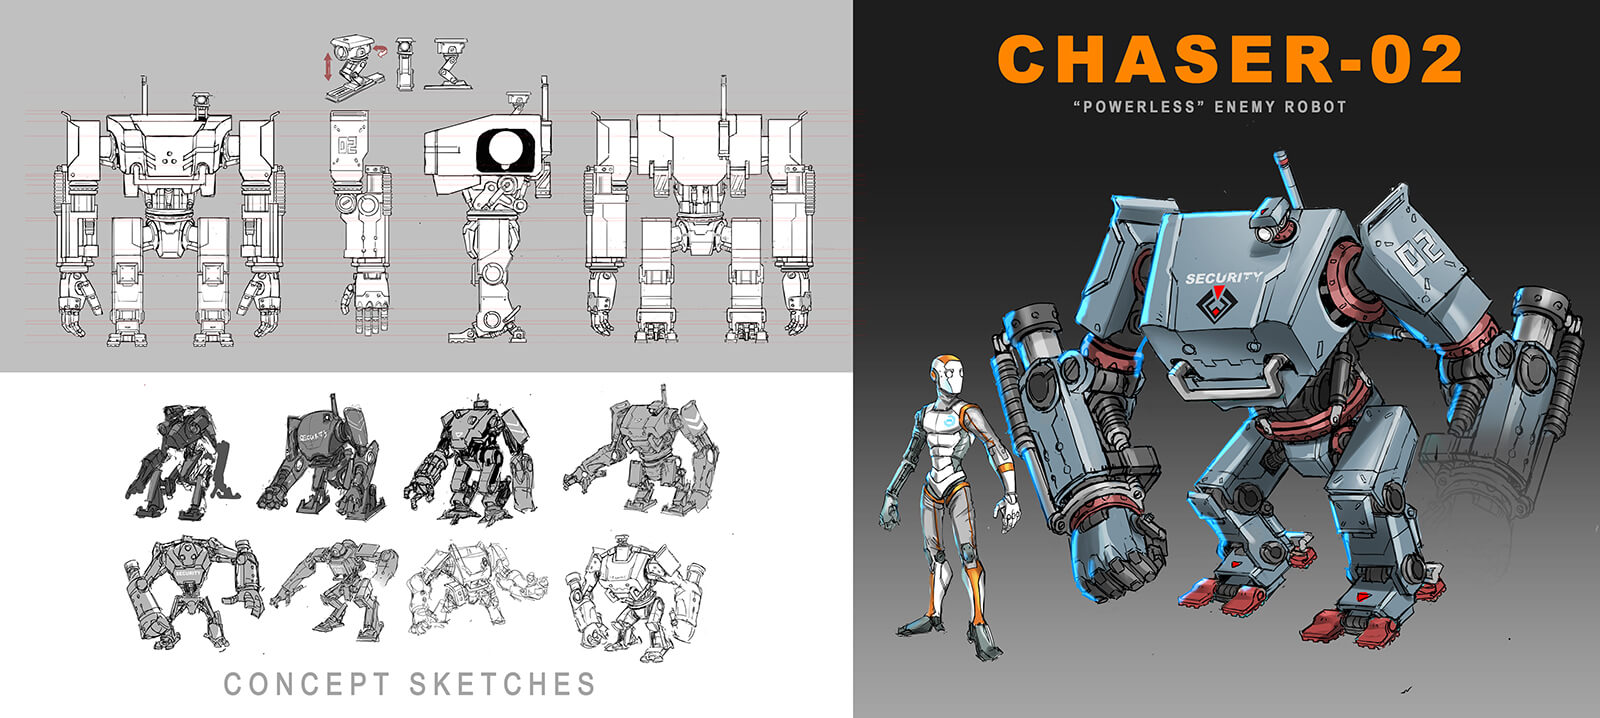 Concept sketches for an android and large robotic sentry.